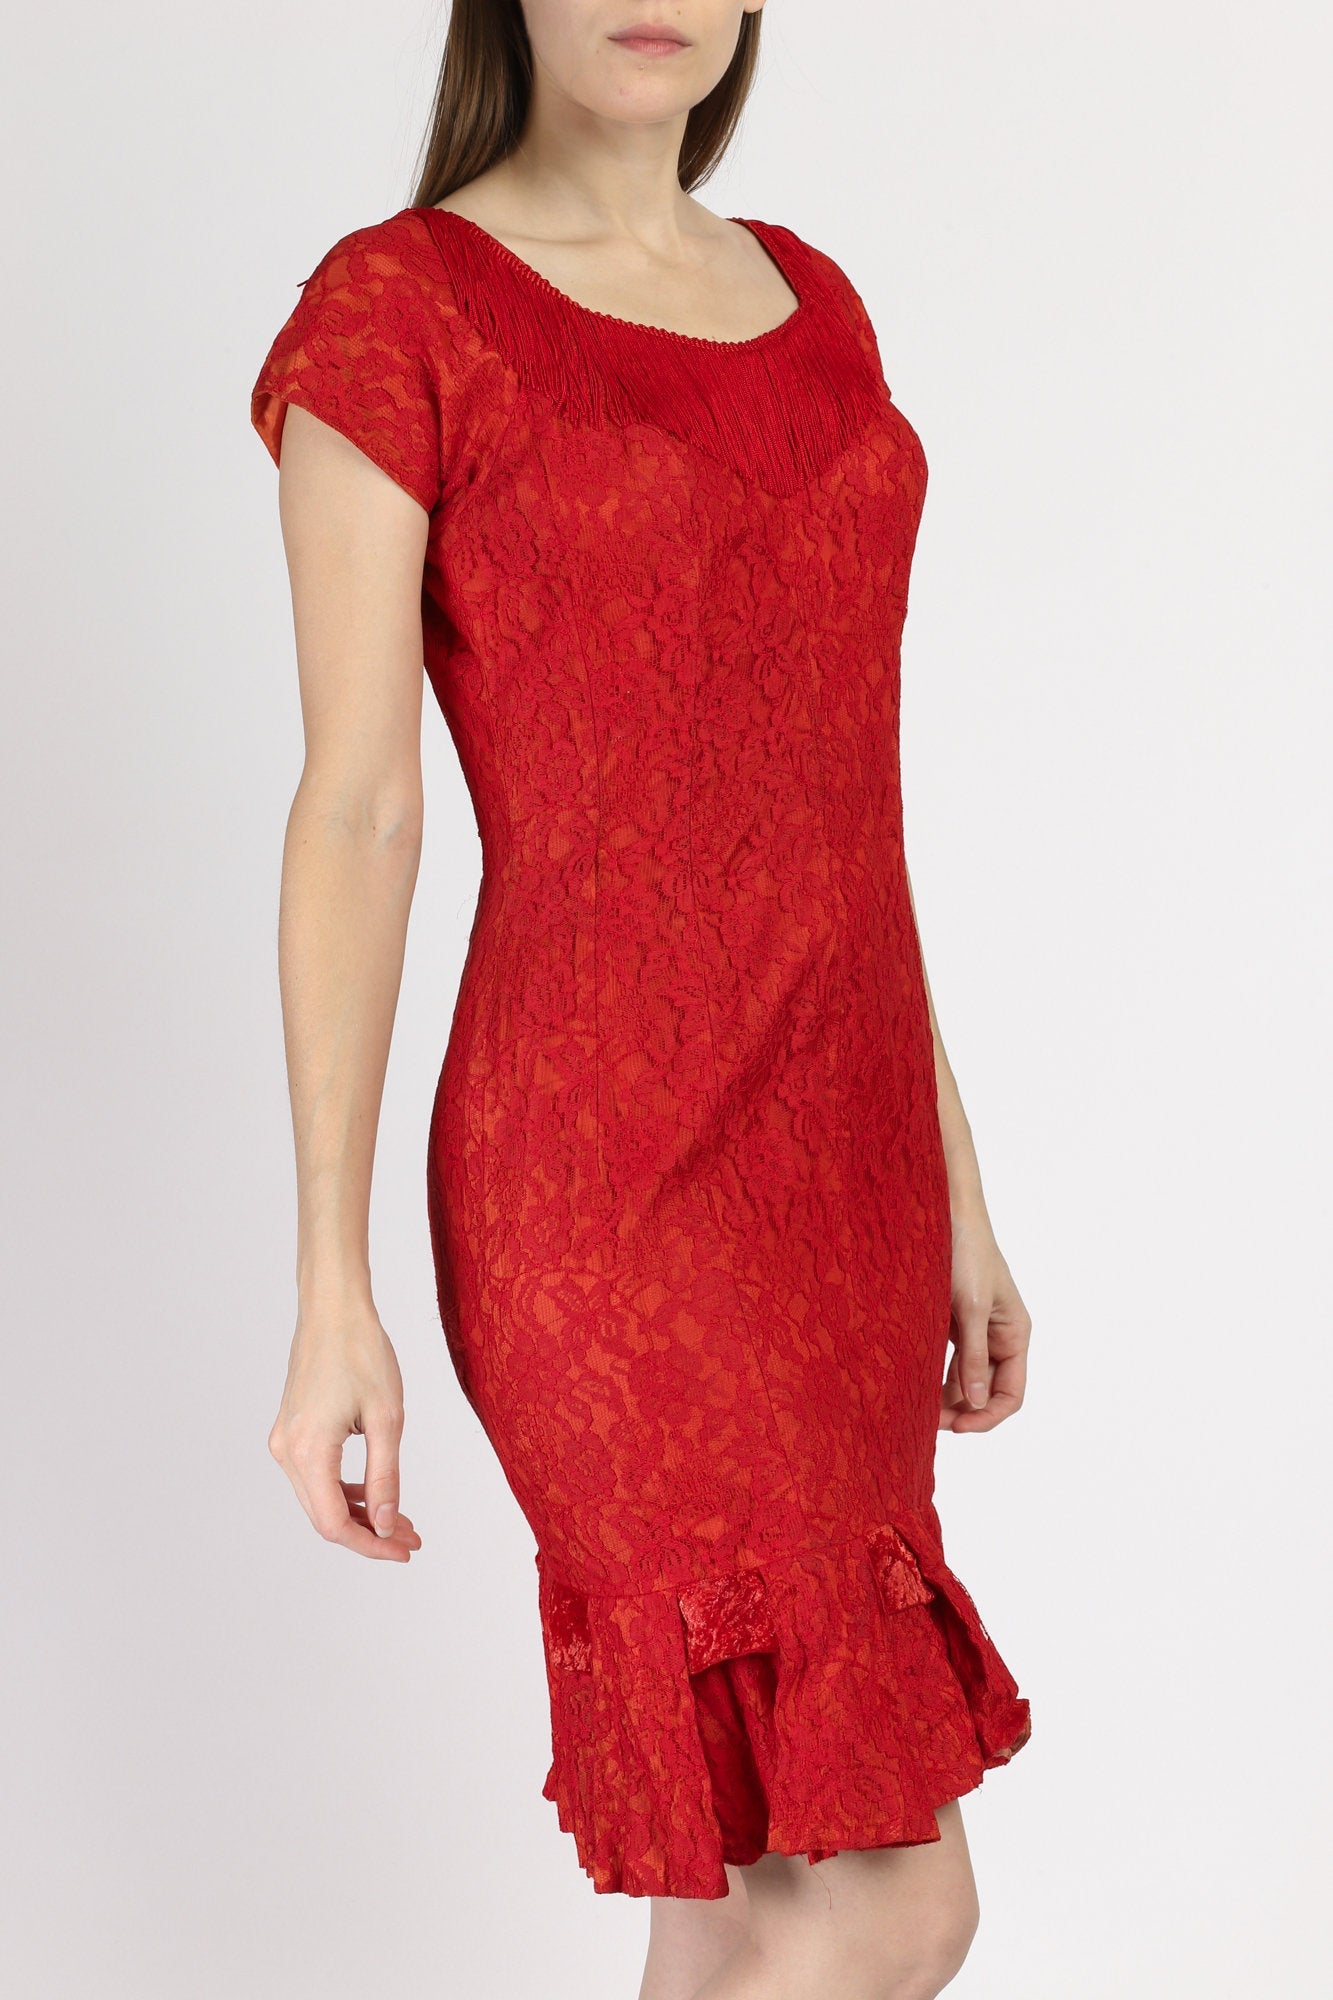 60s Red Lace Fringe Party Dress - Medium